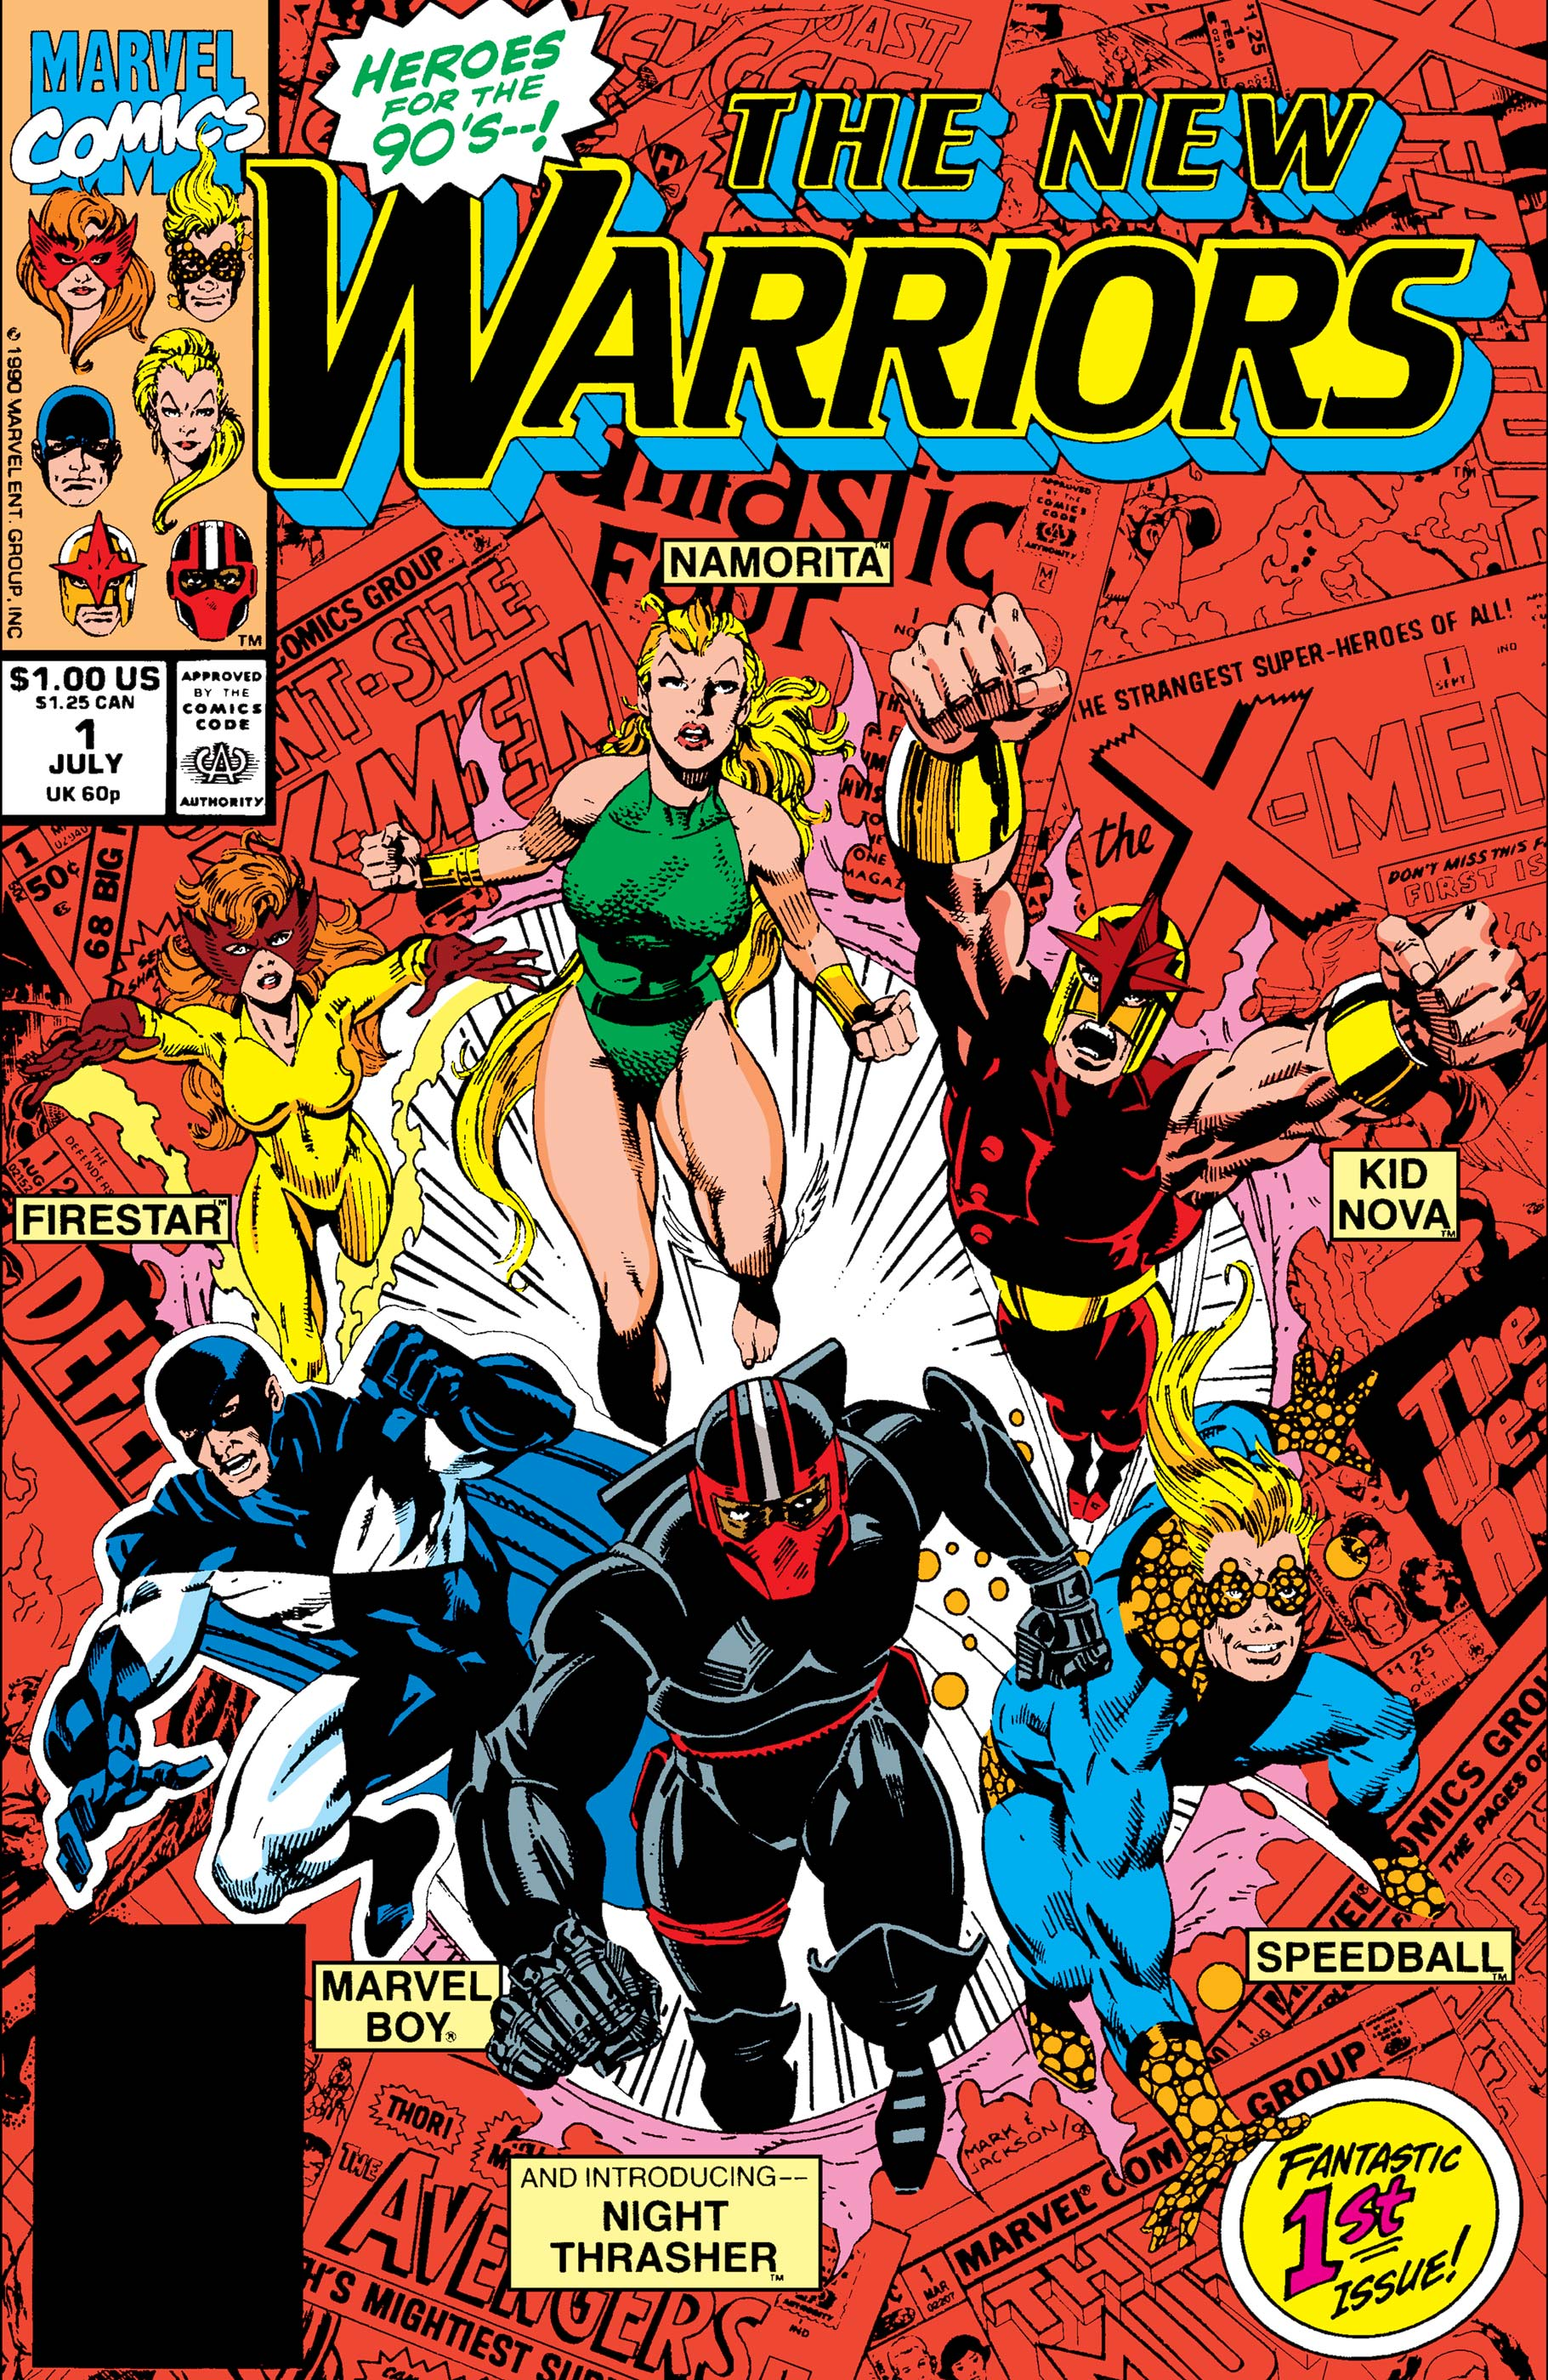 New Warriors (1990) #1 | Comic Issues | Marvel